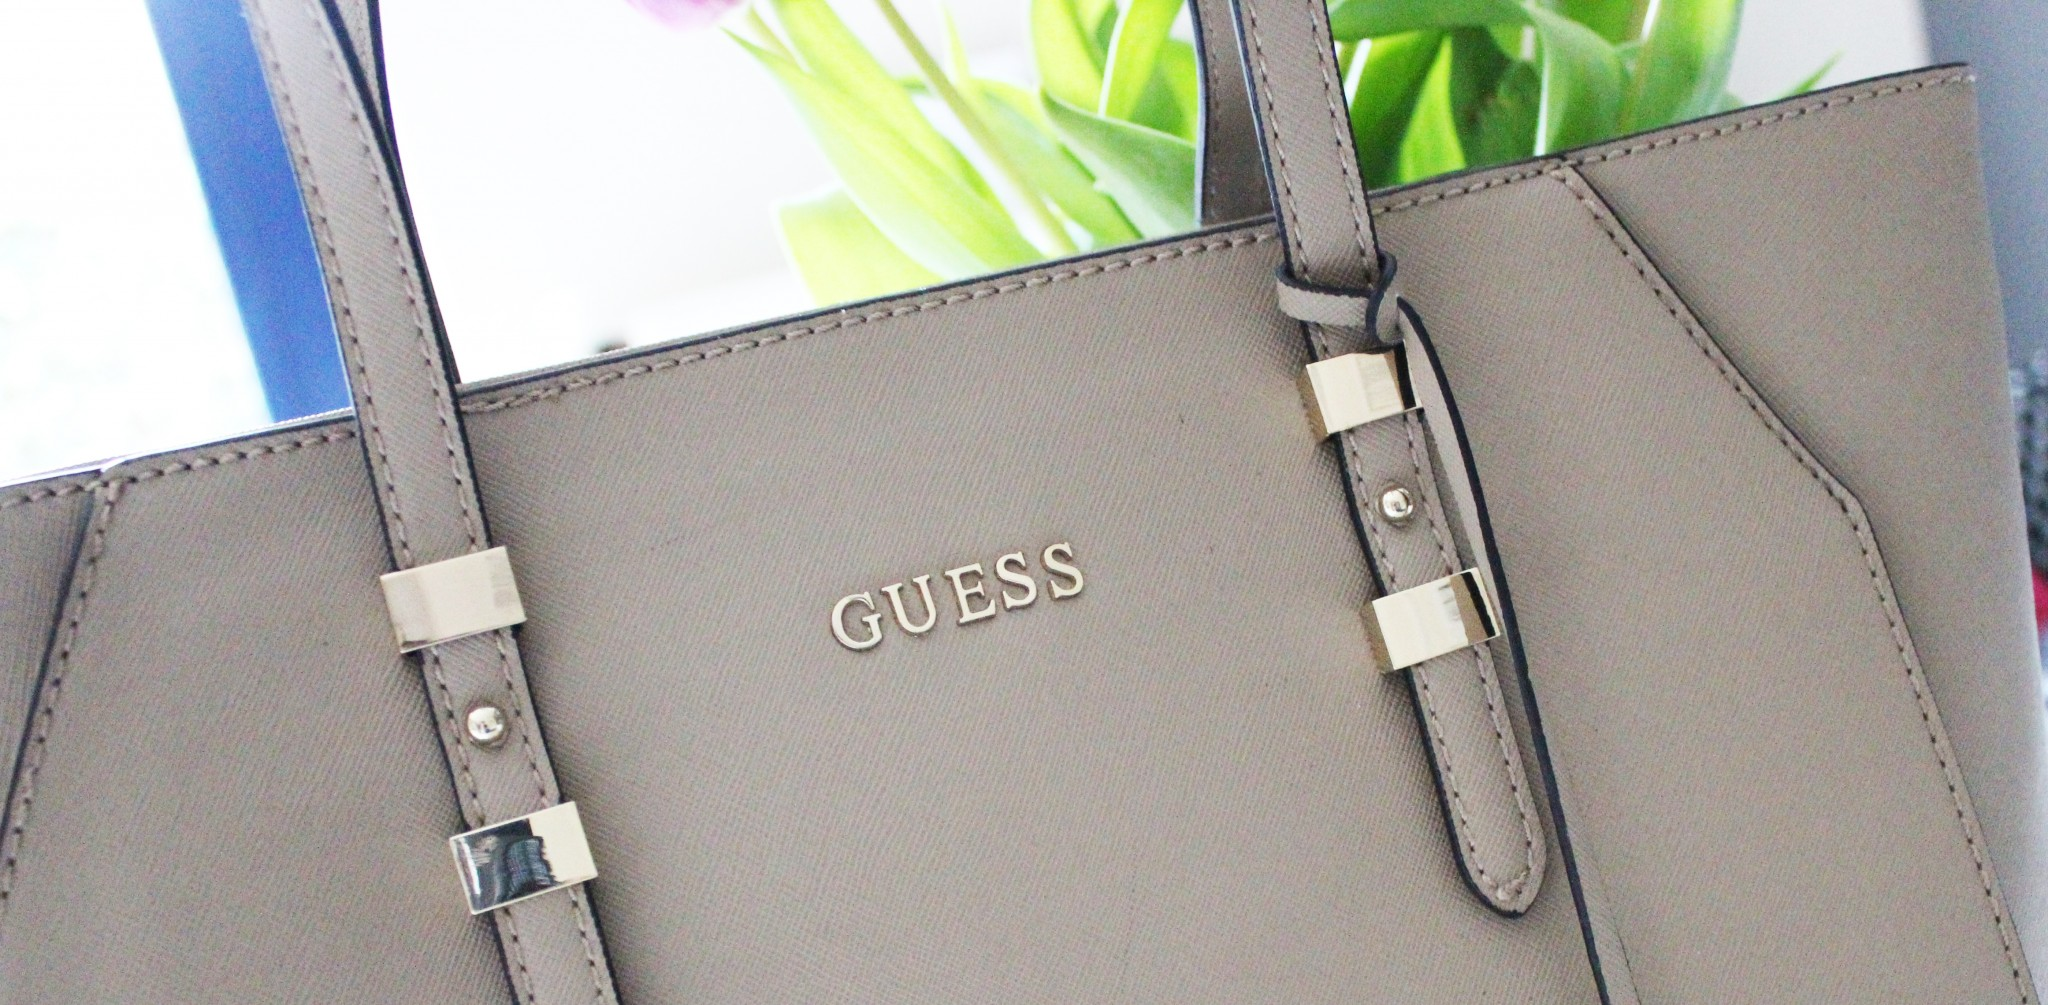 New in: Guess tas (Opening Flagshipstore Duifhuizen)